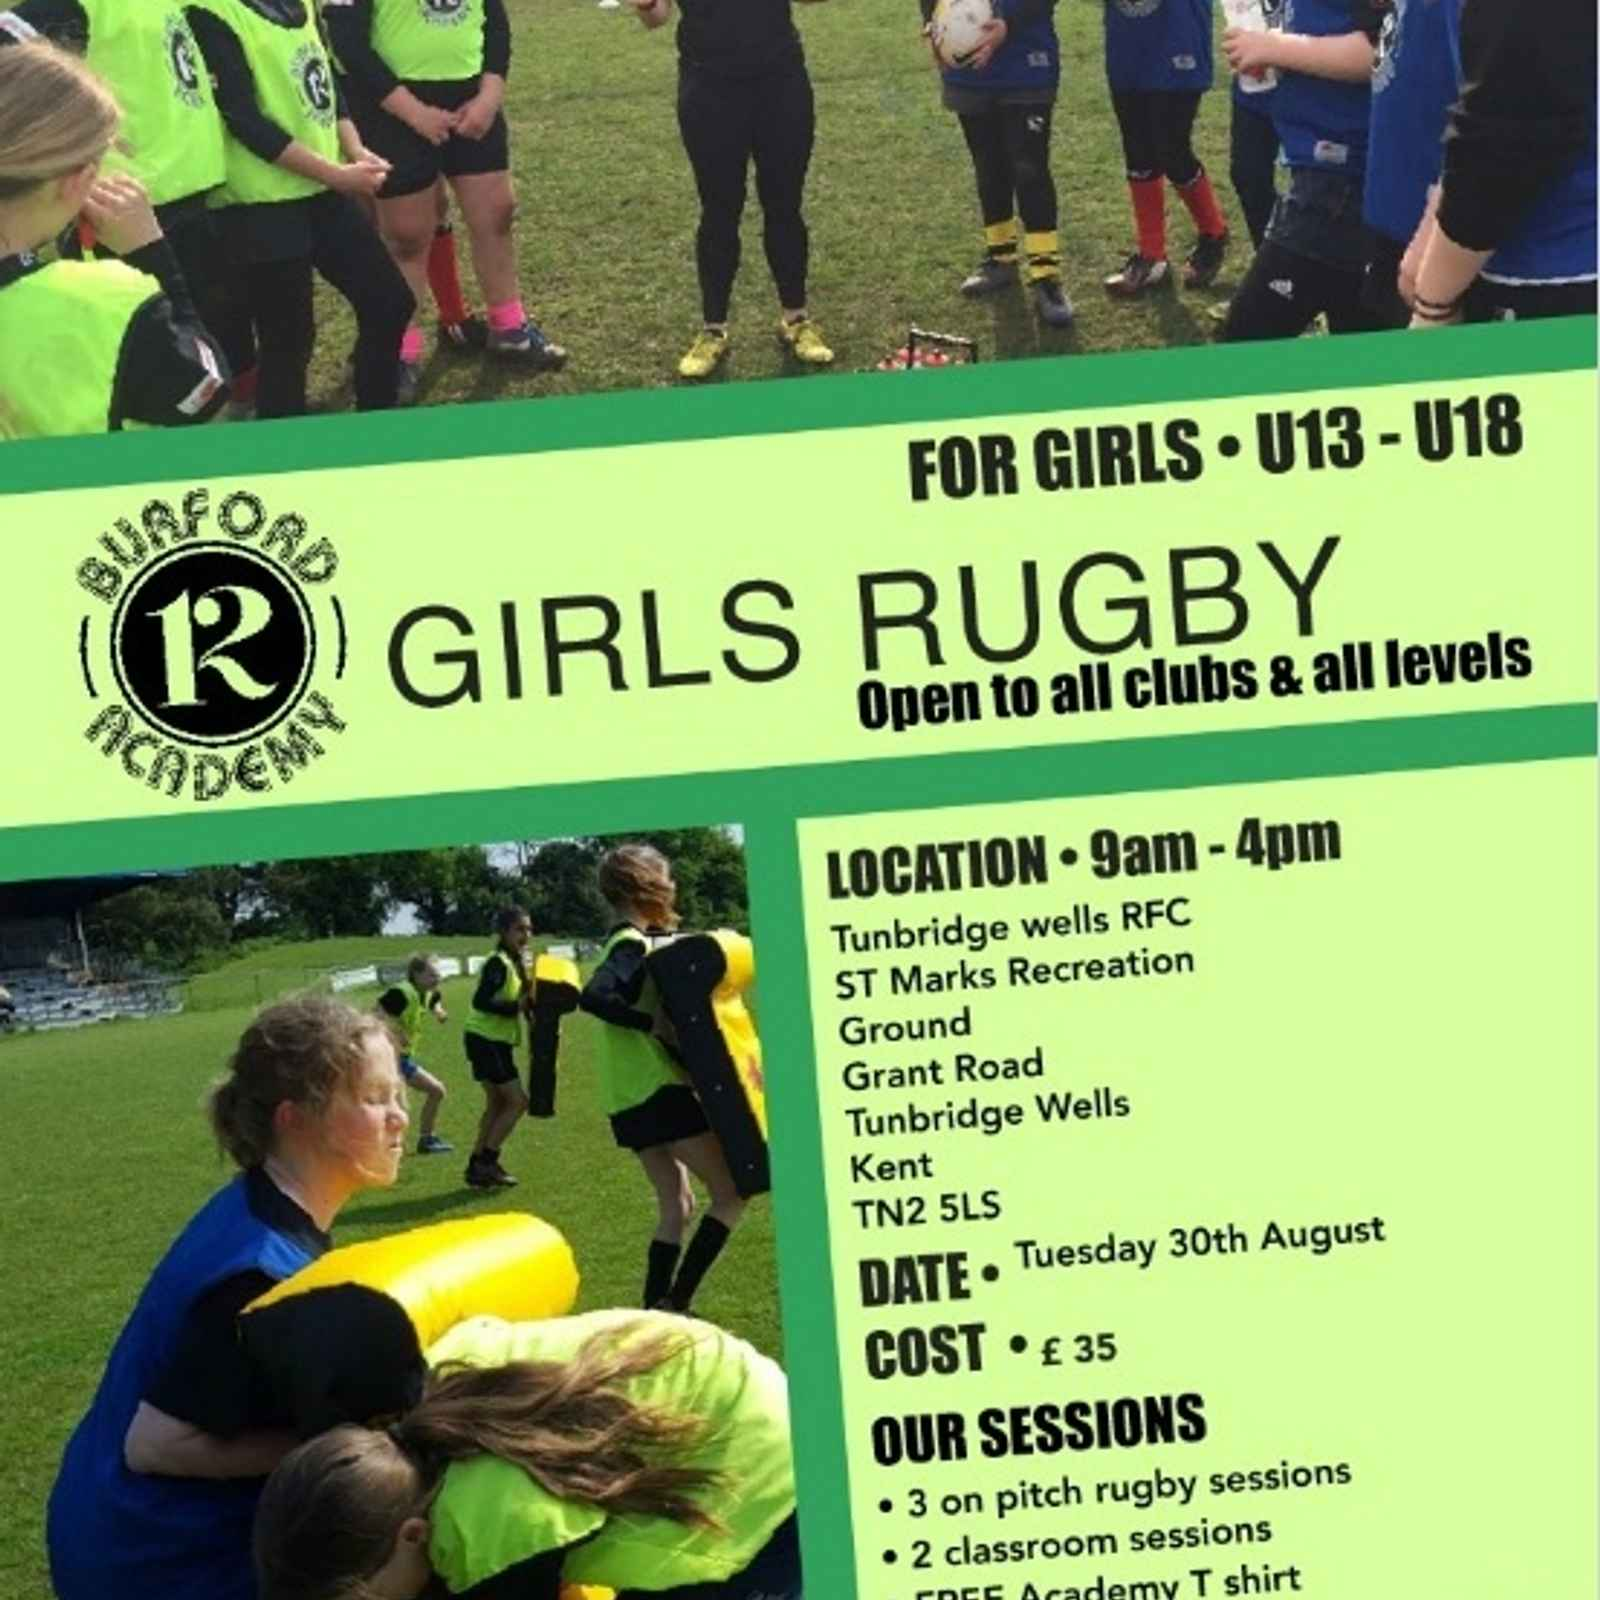 TWRFC Ladies to host World Cup Winner's Girls Rugby Camp